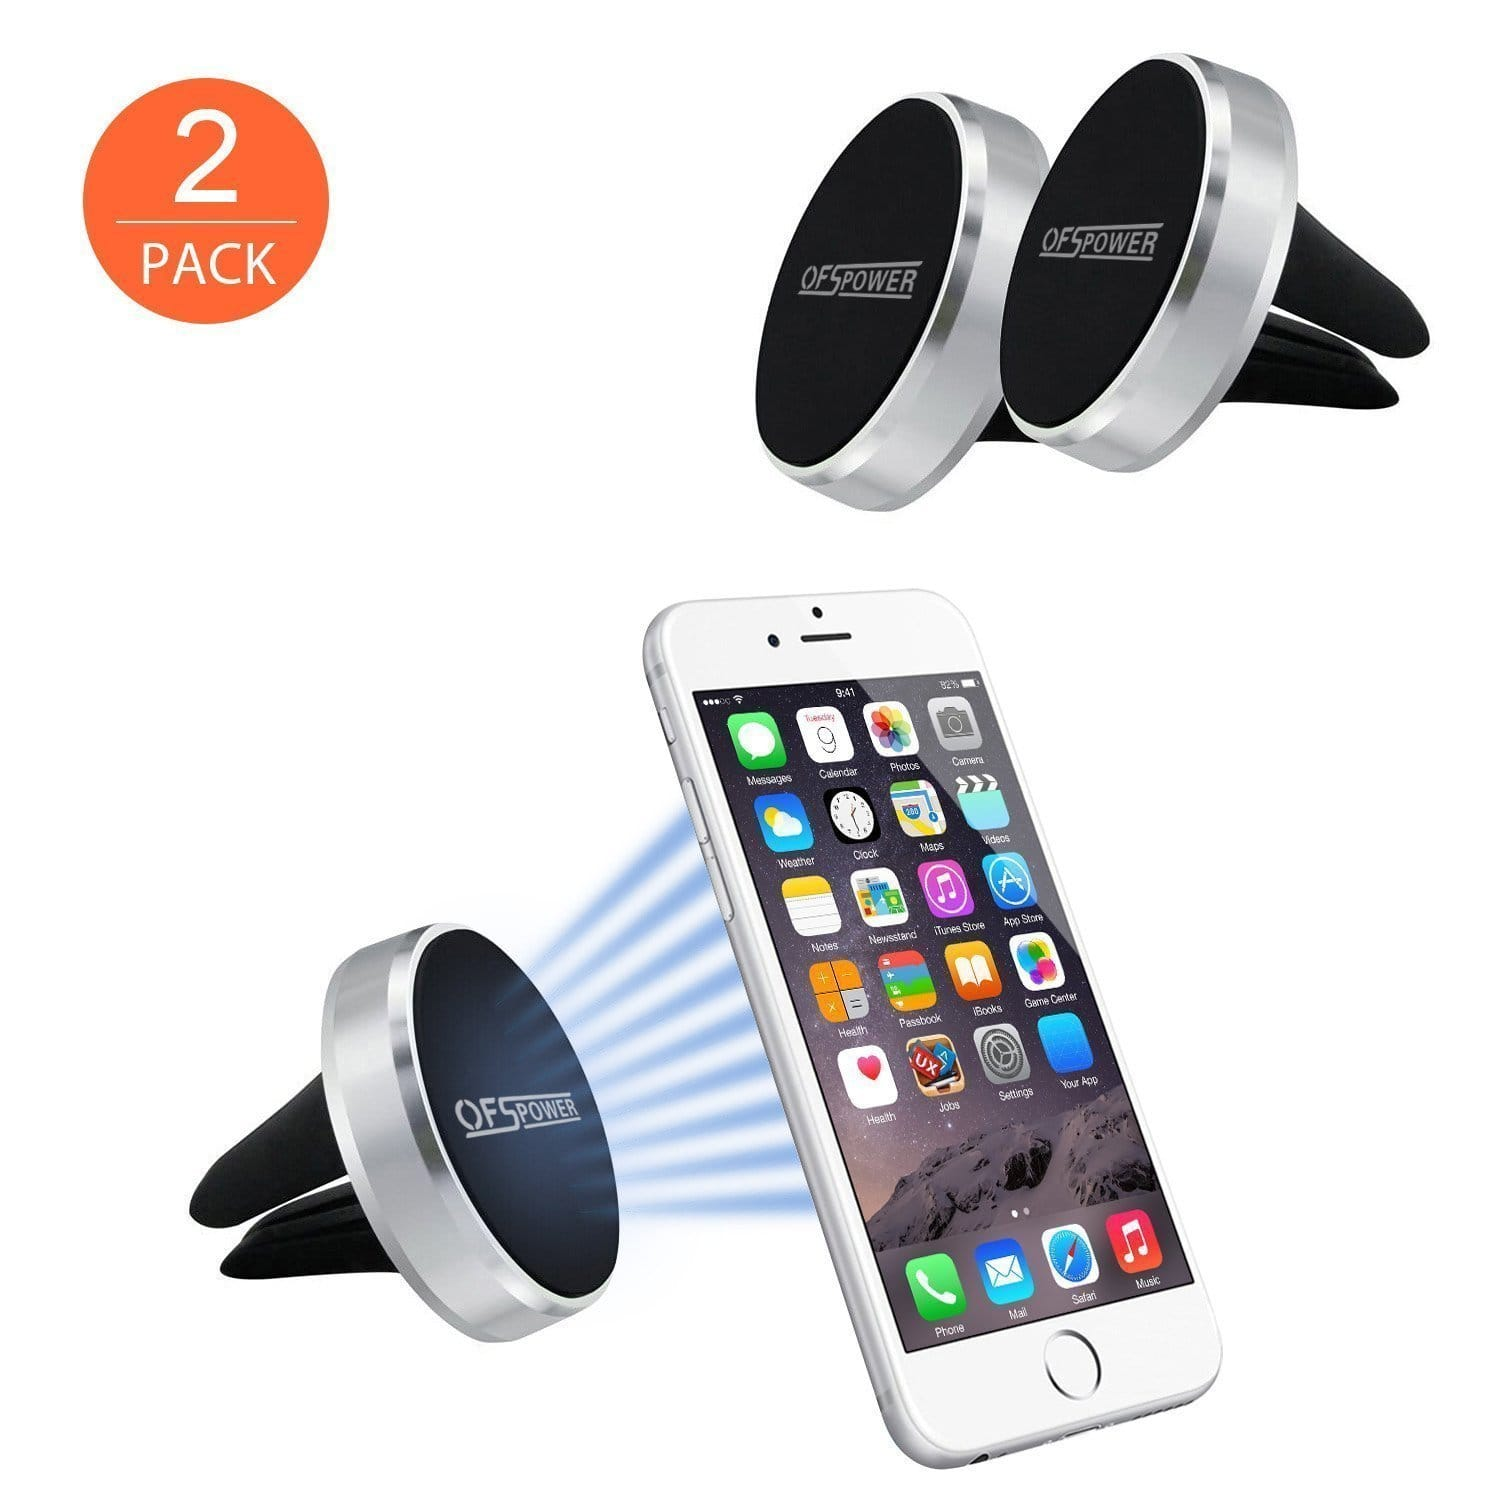 ADD-ON: 2 Pack Aluminum Universal Magnetic Air Vent Car Mount Phone Holder $5.99